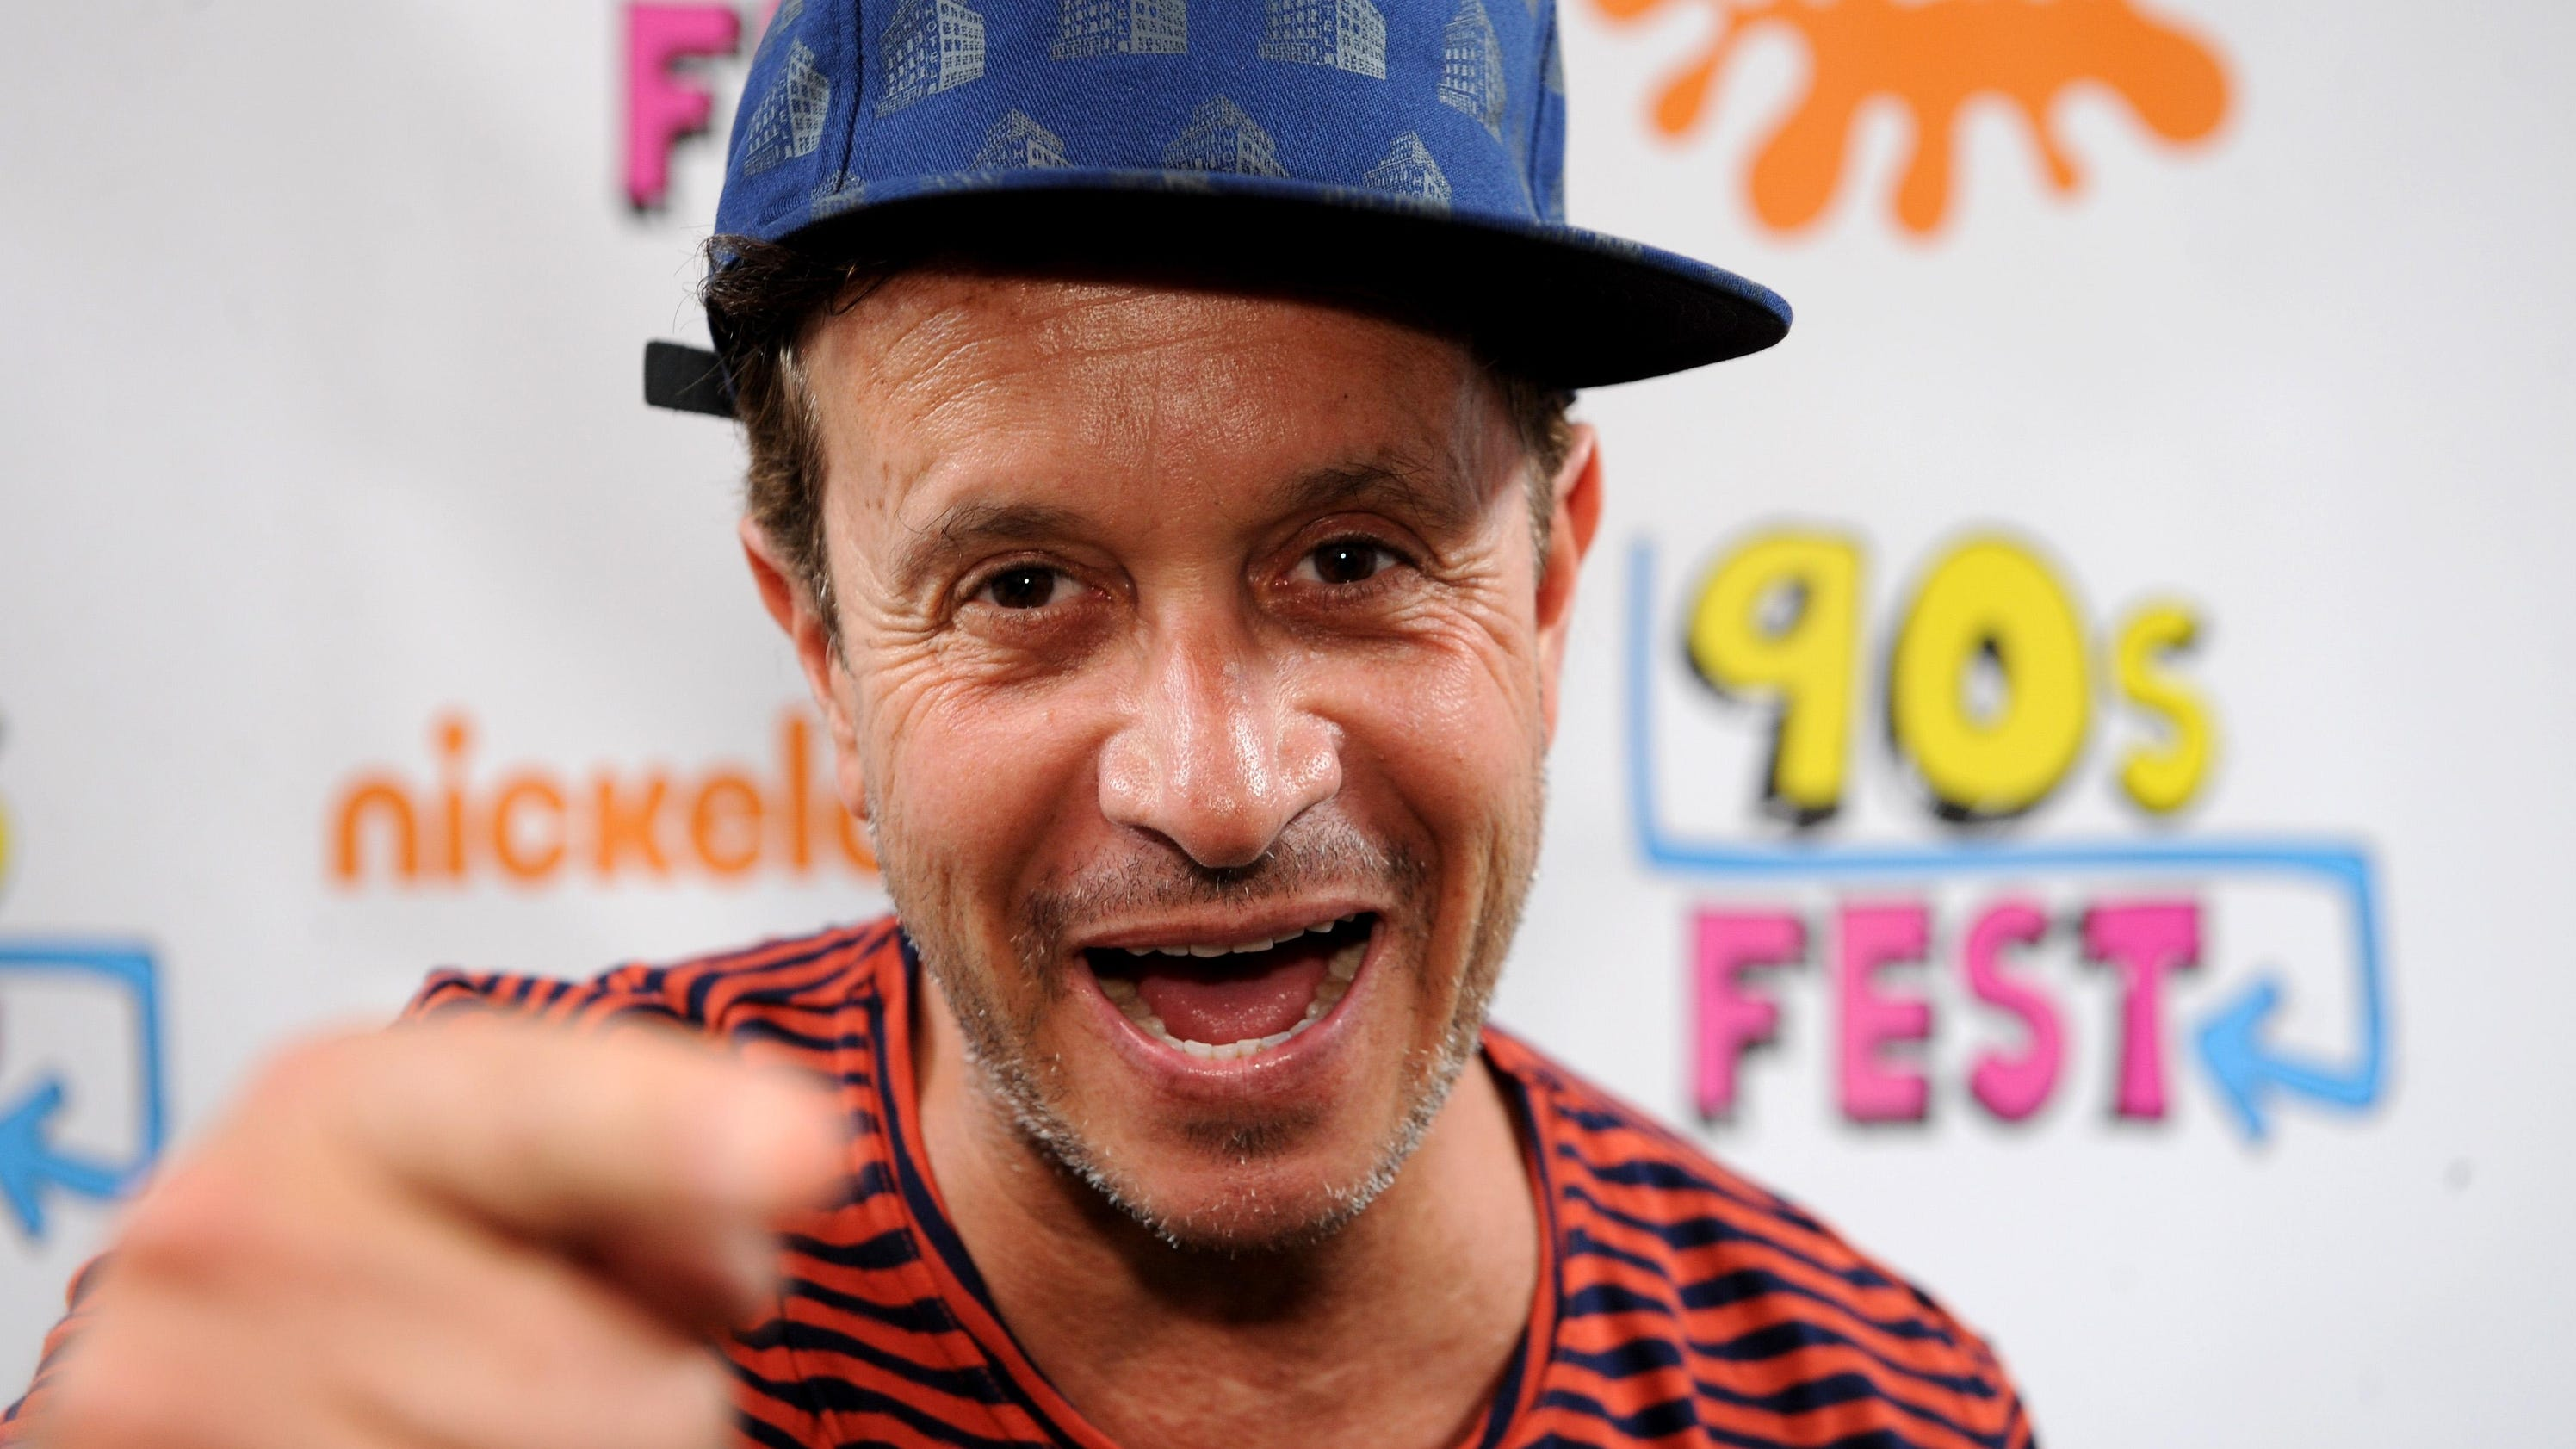 New Concerts: Pauly Shore plays the Nugget